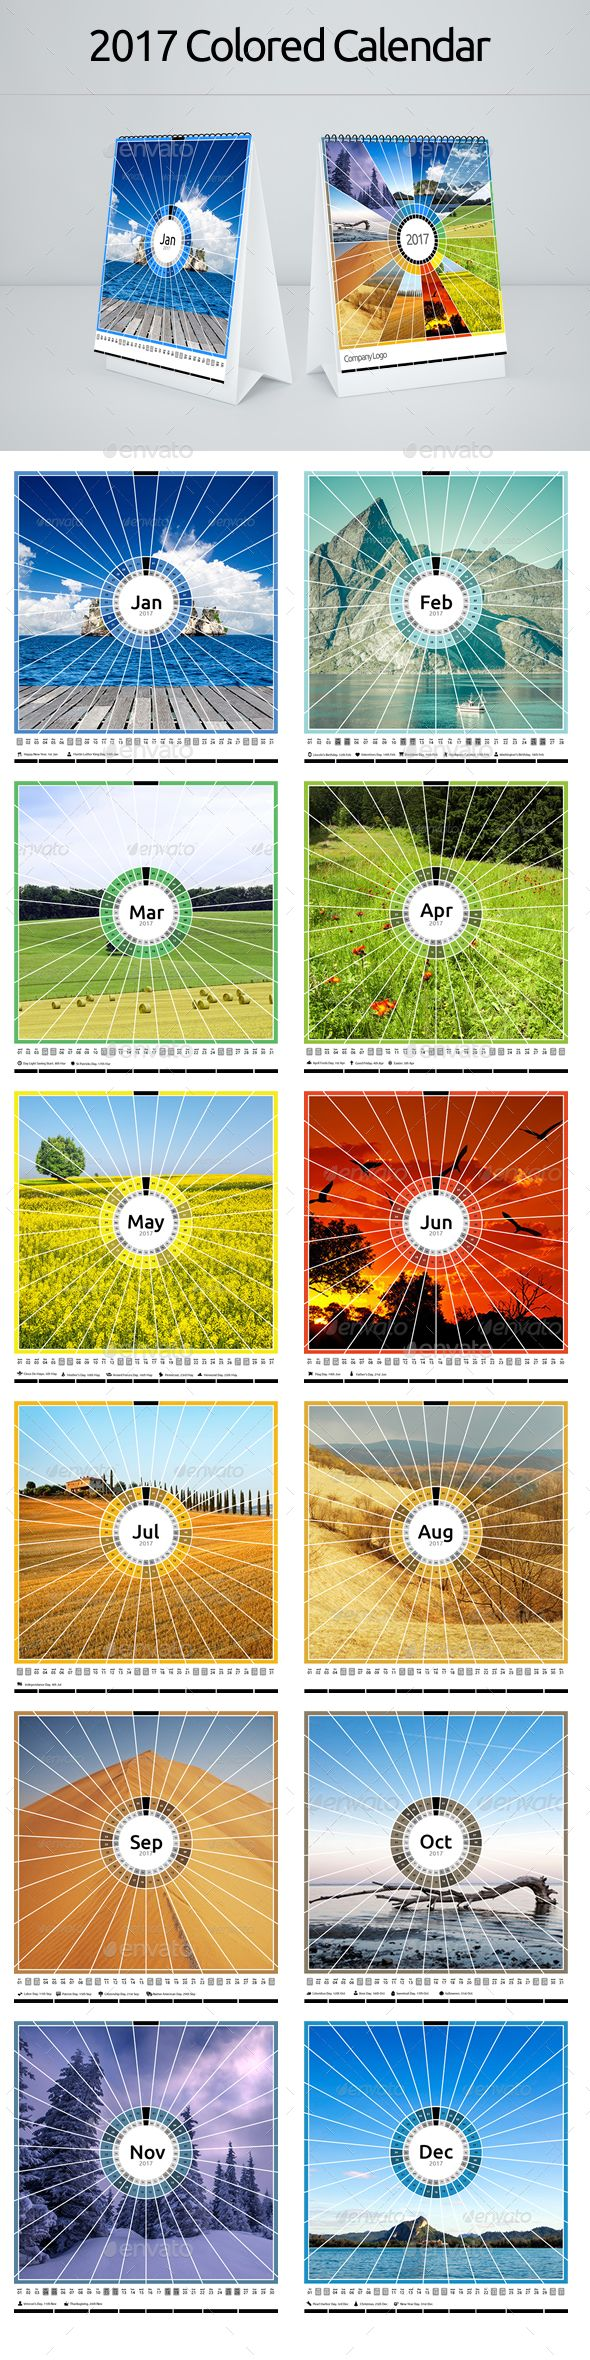 Colored Scenery Calendar for Desk and Wall Template Vector EPS, AI Illustrator